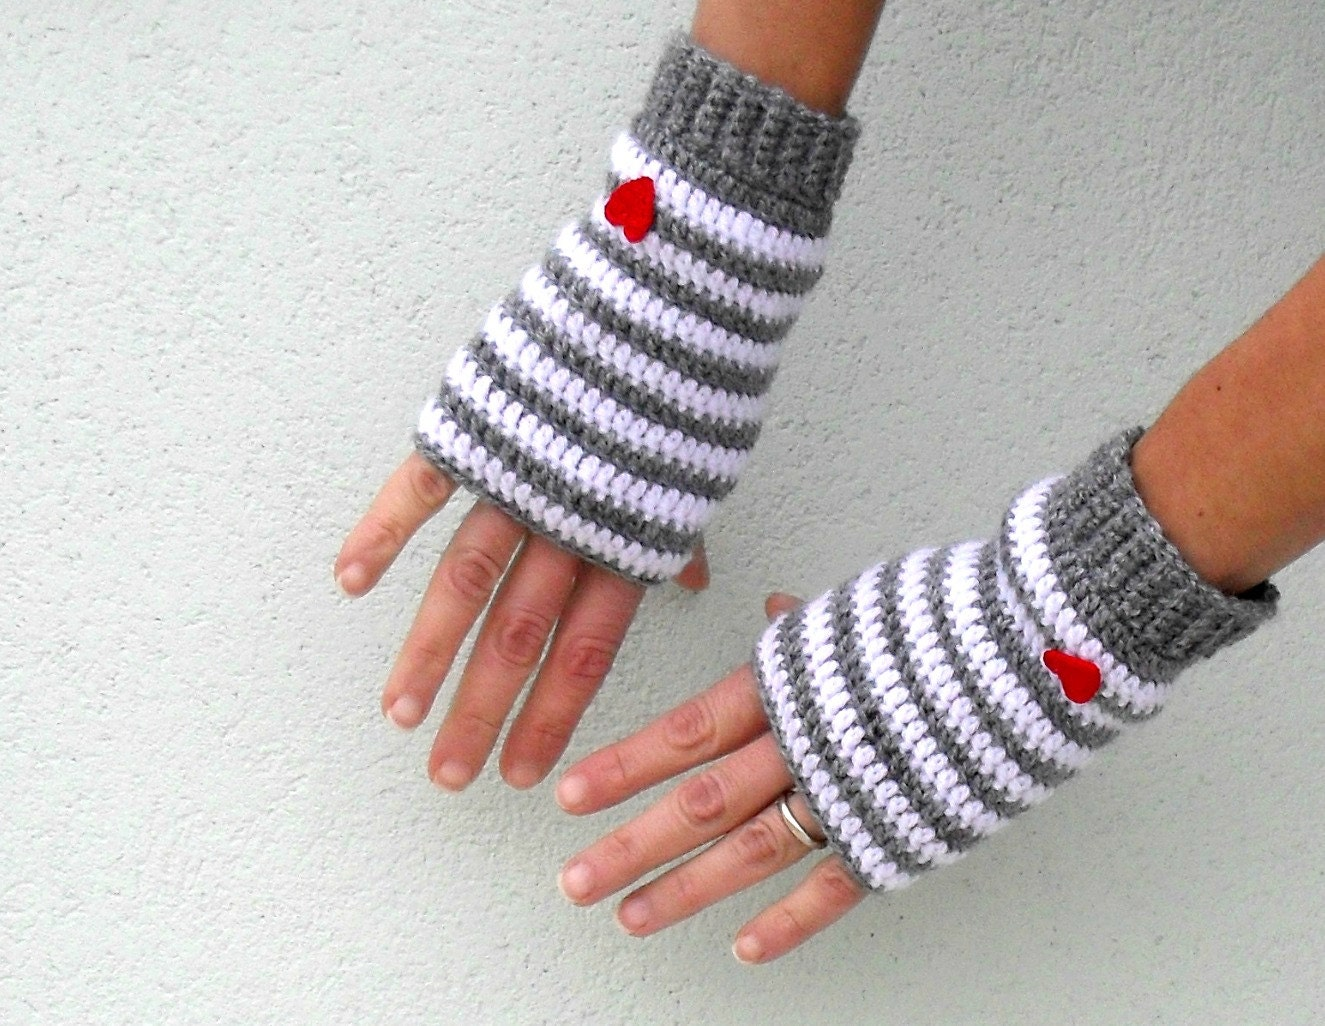 Crochet Fingerless Gloves : Crochet fingerless gloves mittens PDF Pattern Little by yoghi911